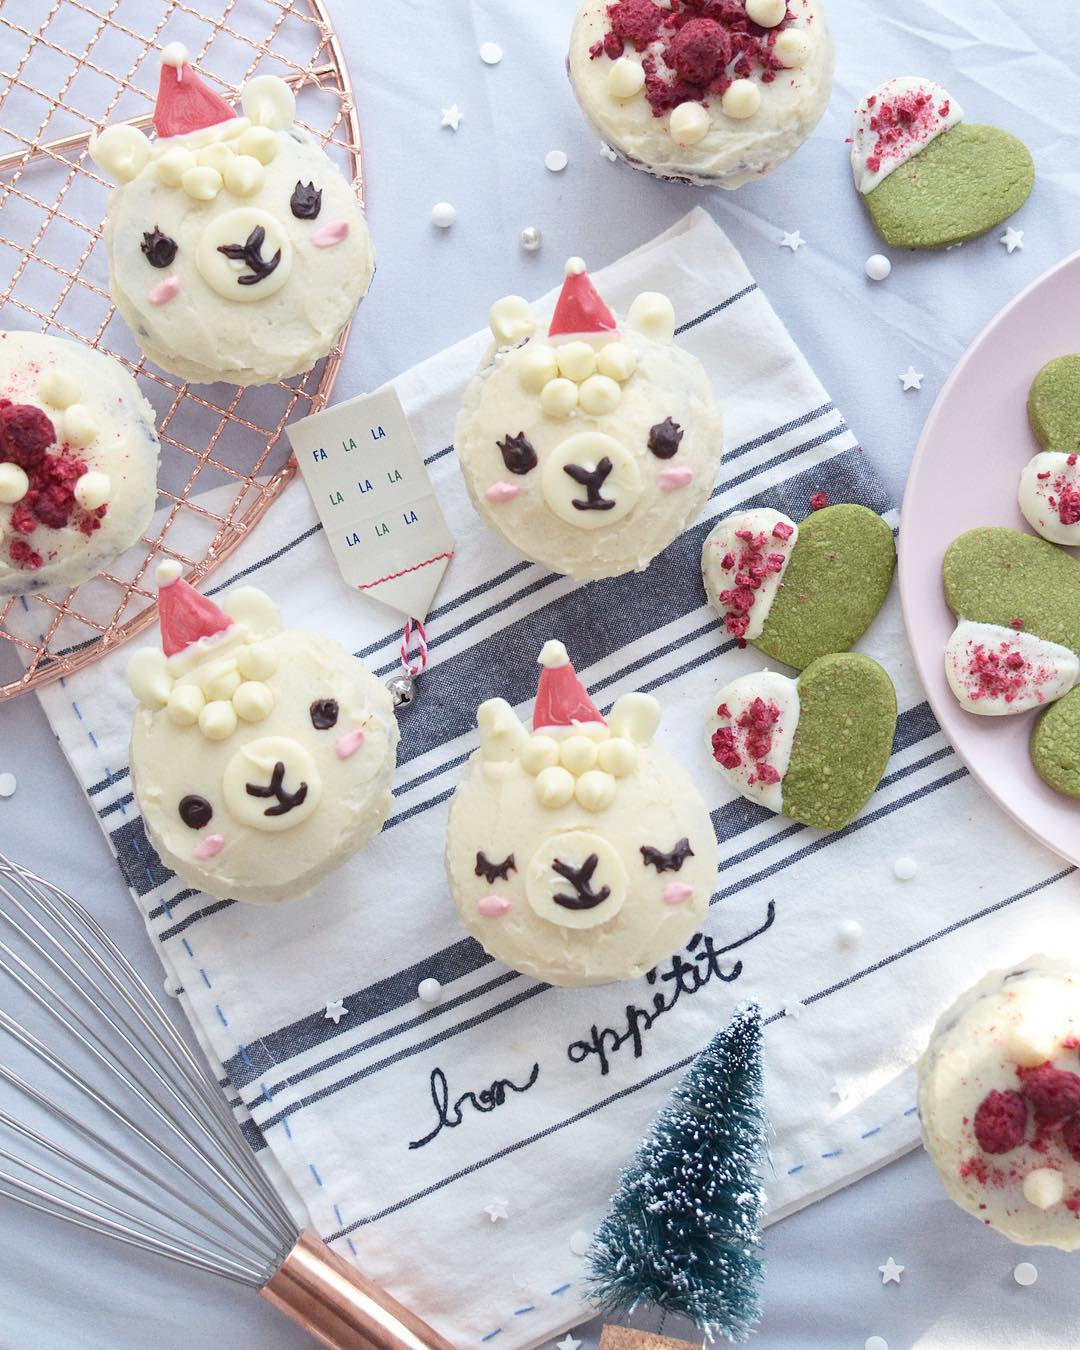 50+ Lovely Llama Crafts, Printables, SVG's DIY's, Food and Gift Ideas: Christmas Llama Cupcakes from Burberrie Jam on Instagram